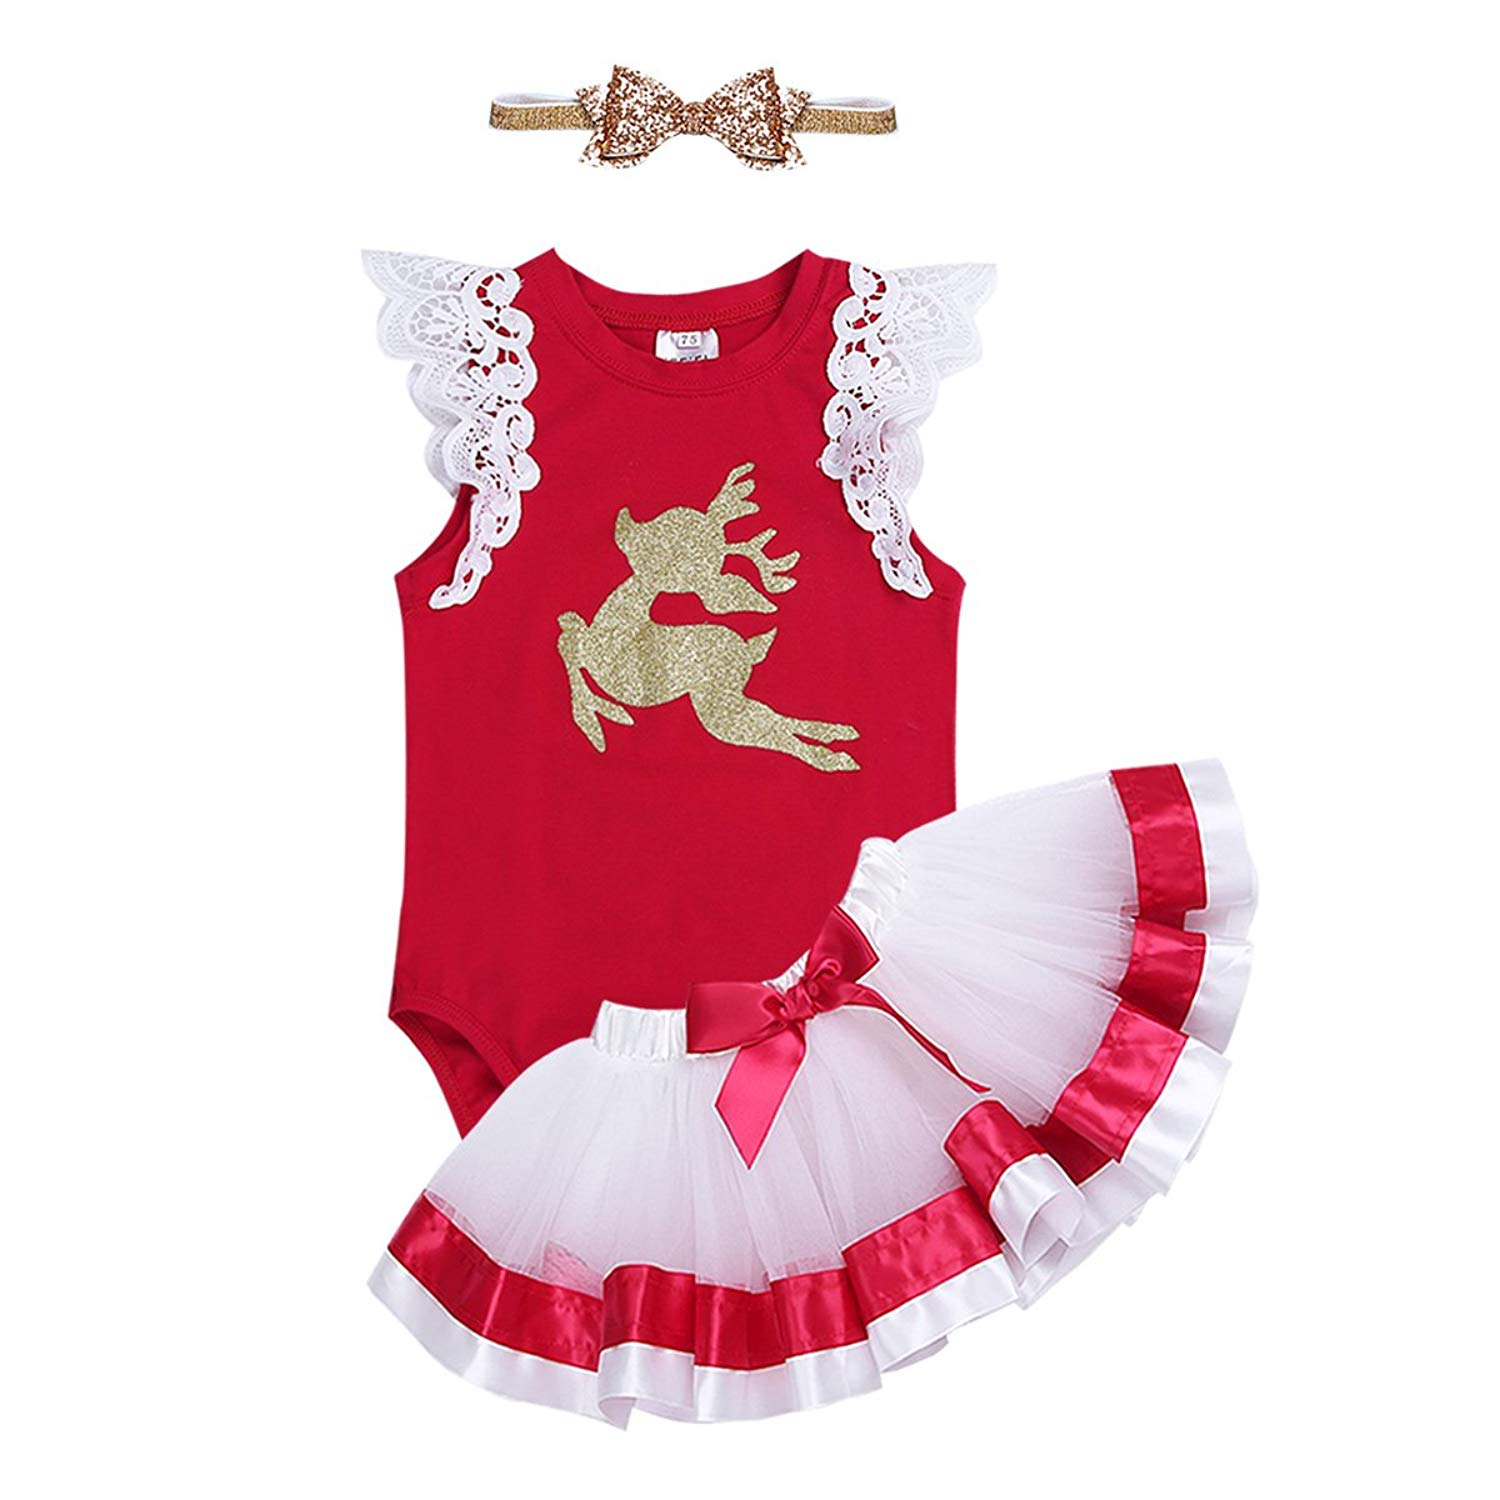 293fcc97a141 Get Quotations · CHICTRY Baby Girls Kids Cute Shiny Christmas Outfits  Flutter Sleeve Romper with Layered Tutu Skirt Headband